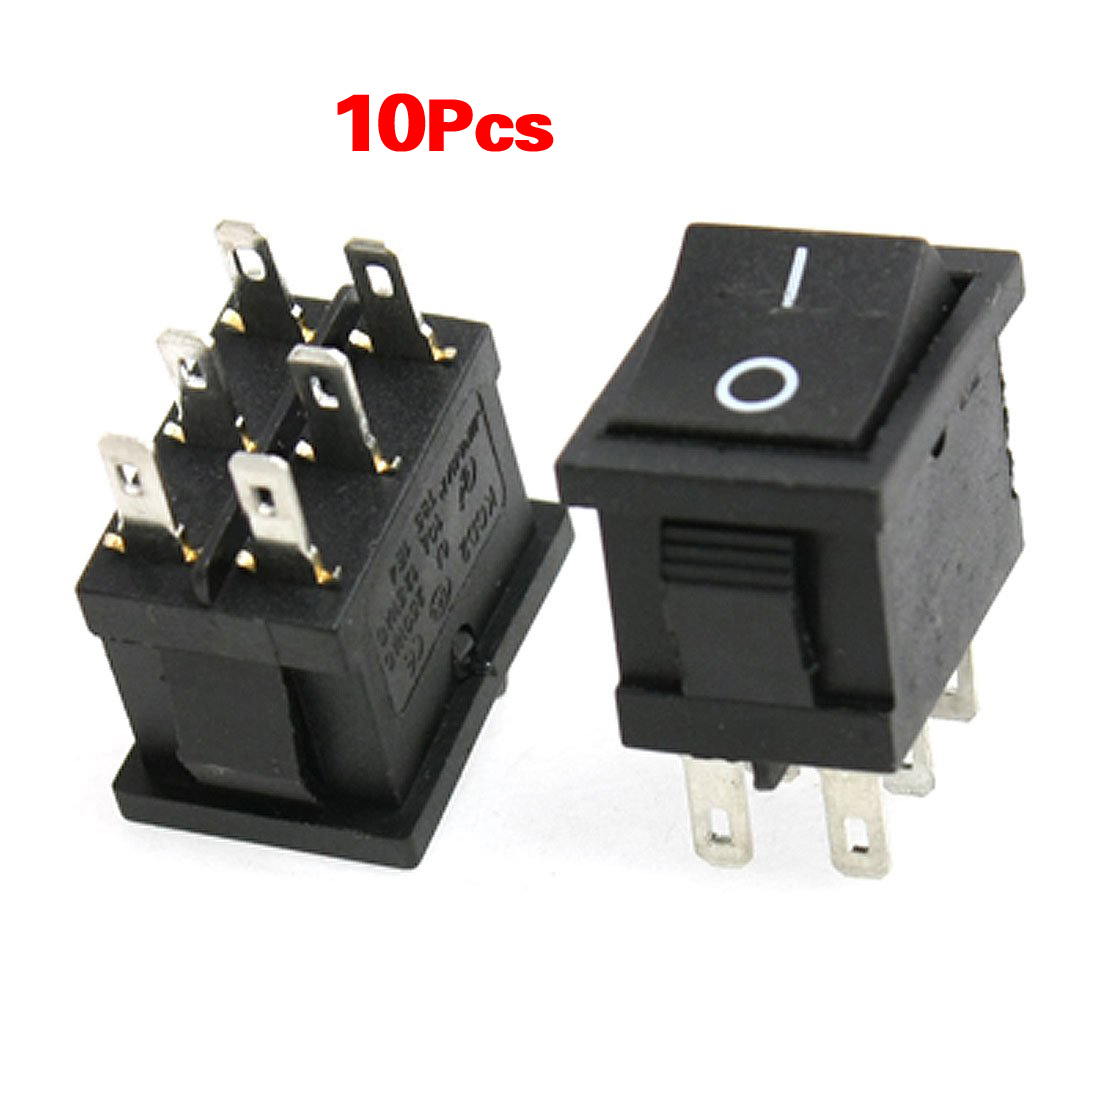 Promotion! 10pcs AC 6A/250V 10A/125V 6 Pin DPDT ON/ON 2 Position Snap In Boat Rocker Switch приставка рейсмусовая белмаш td2500